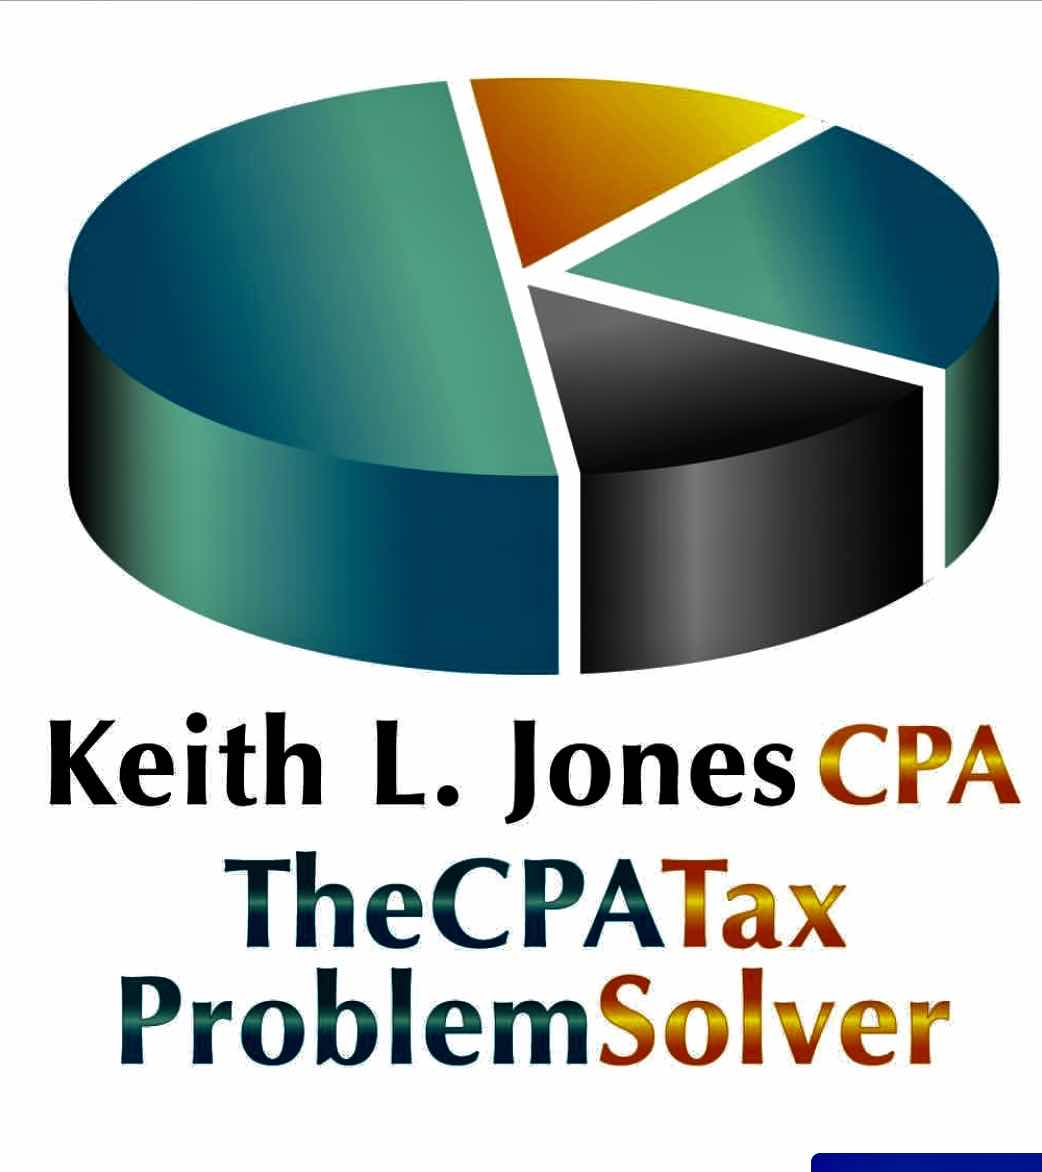 Keith Jones, CPA TheCPATaxProblemSolver